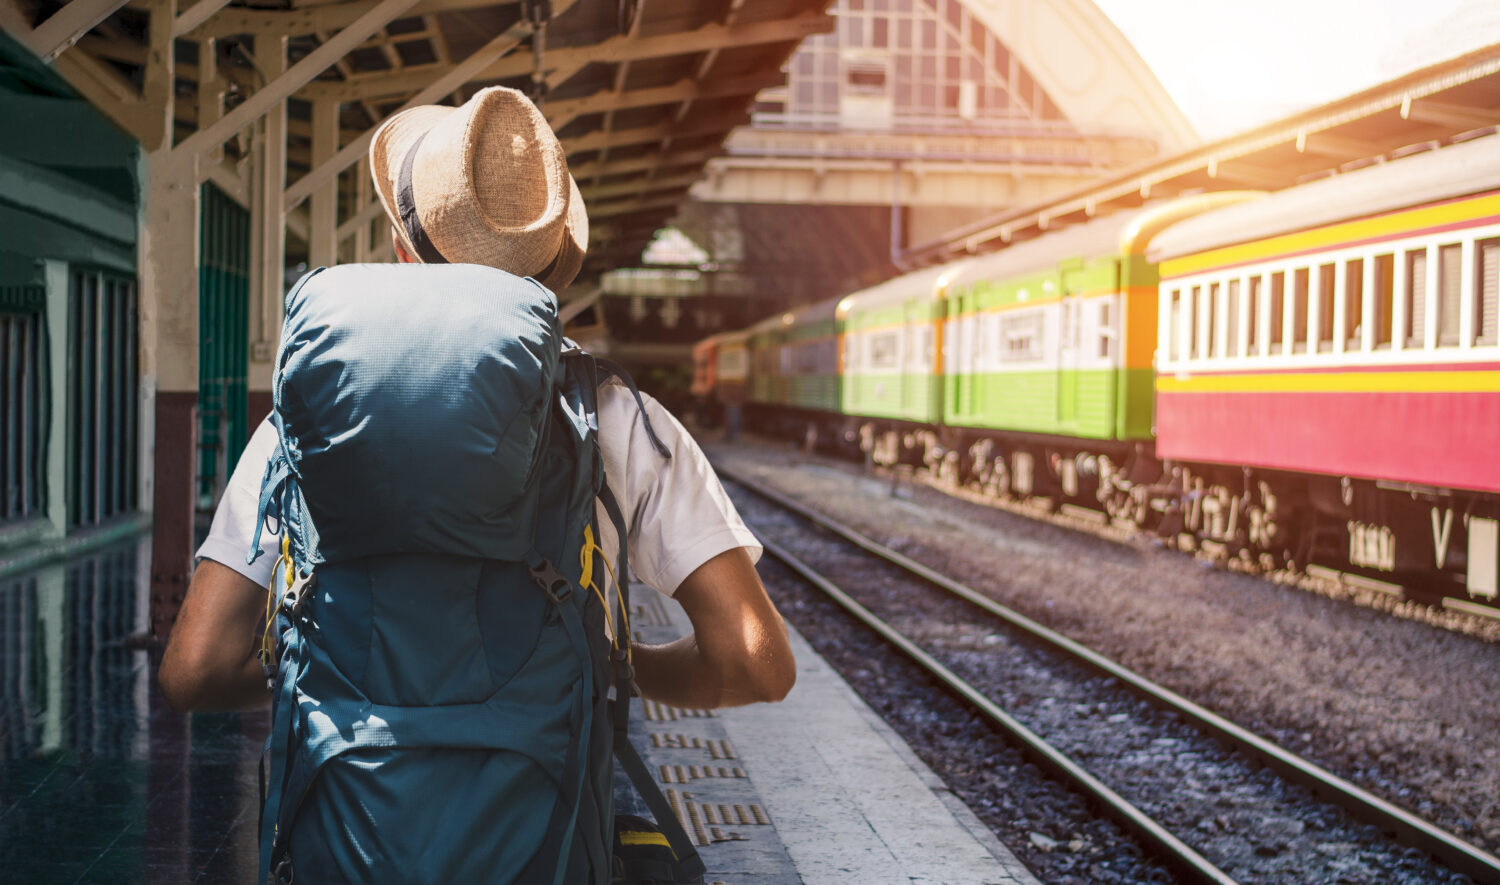 back of a man wearing a backpack and hat waiting for a train